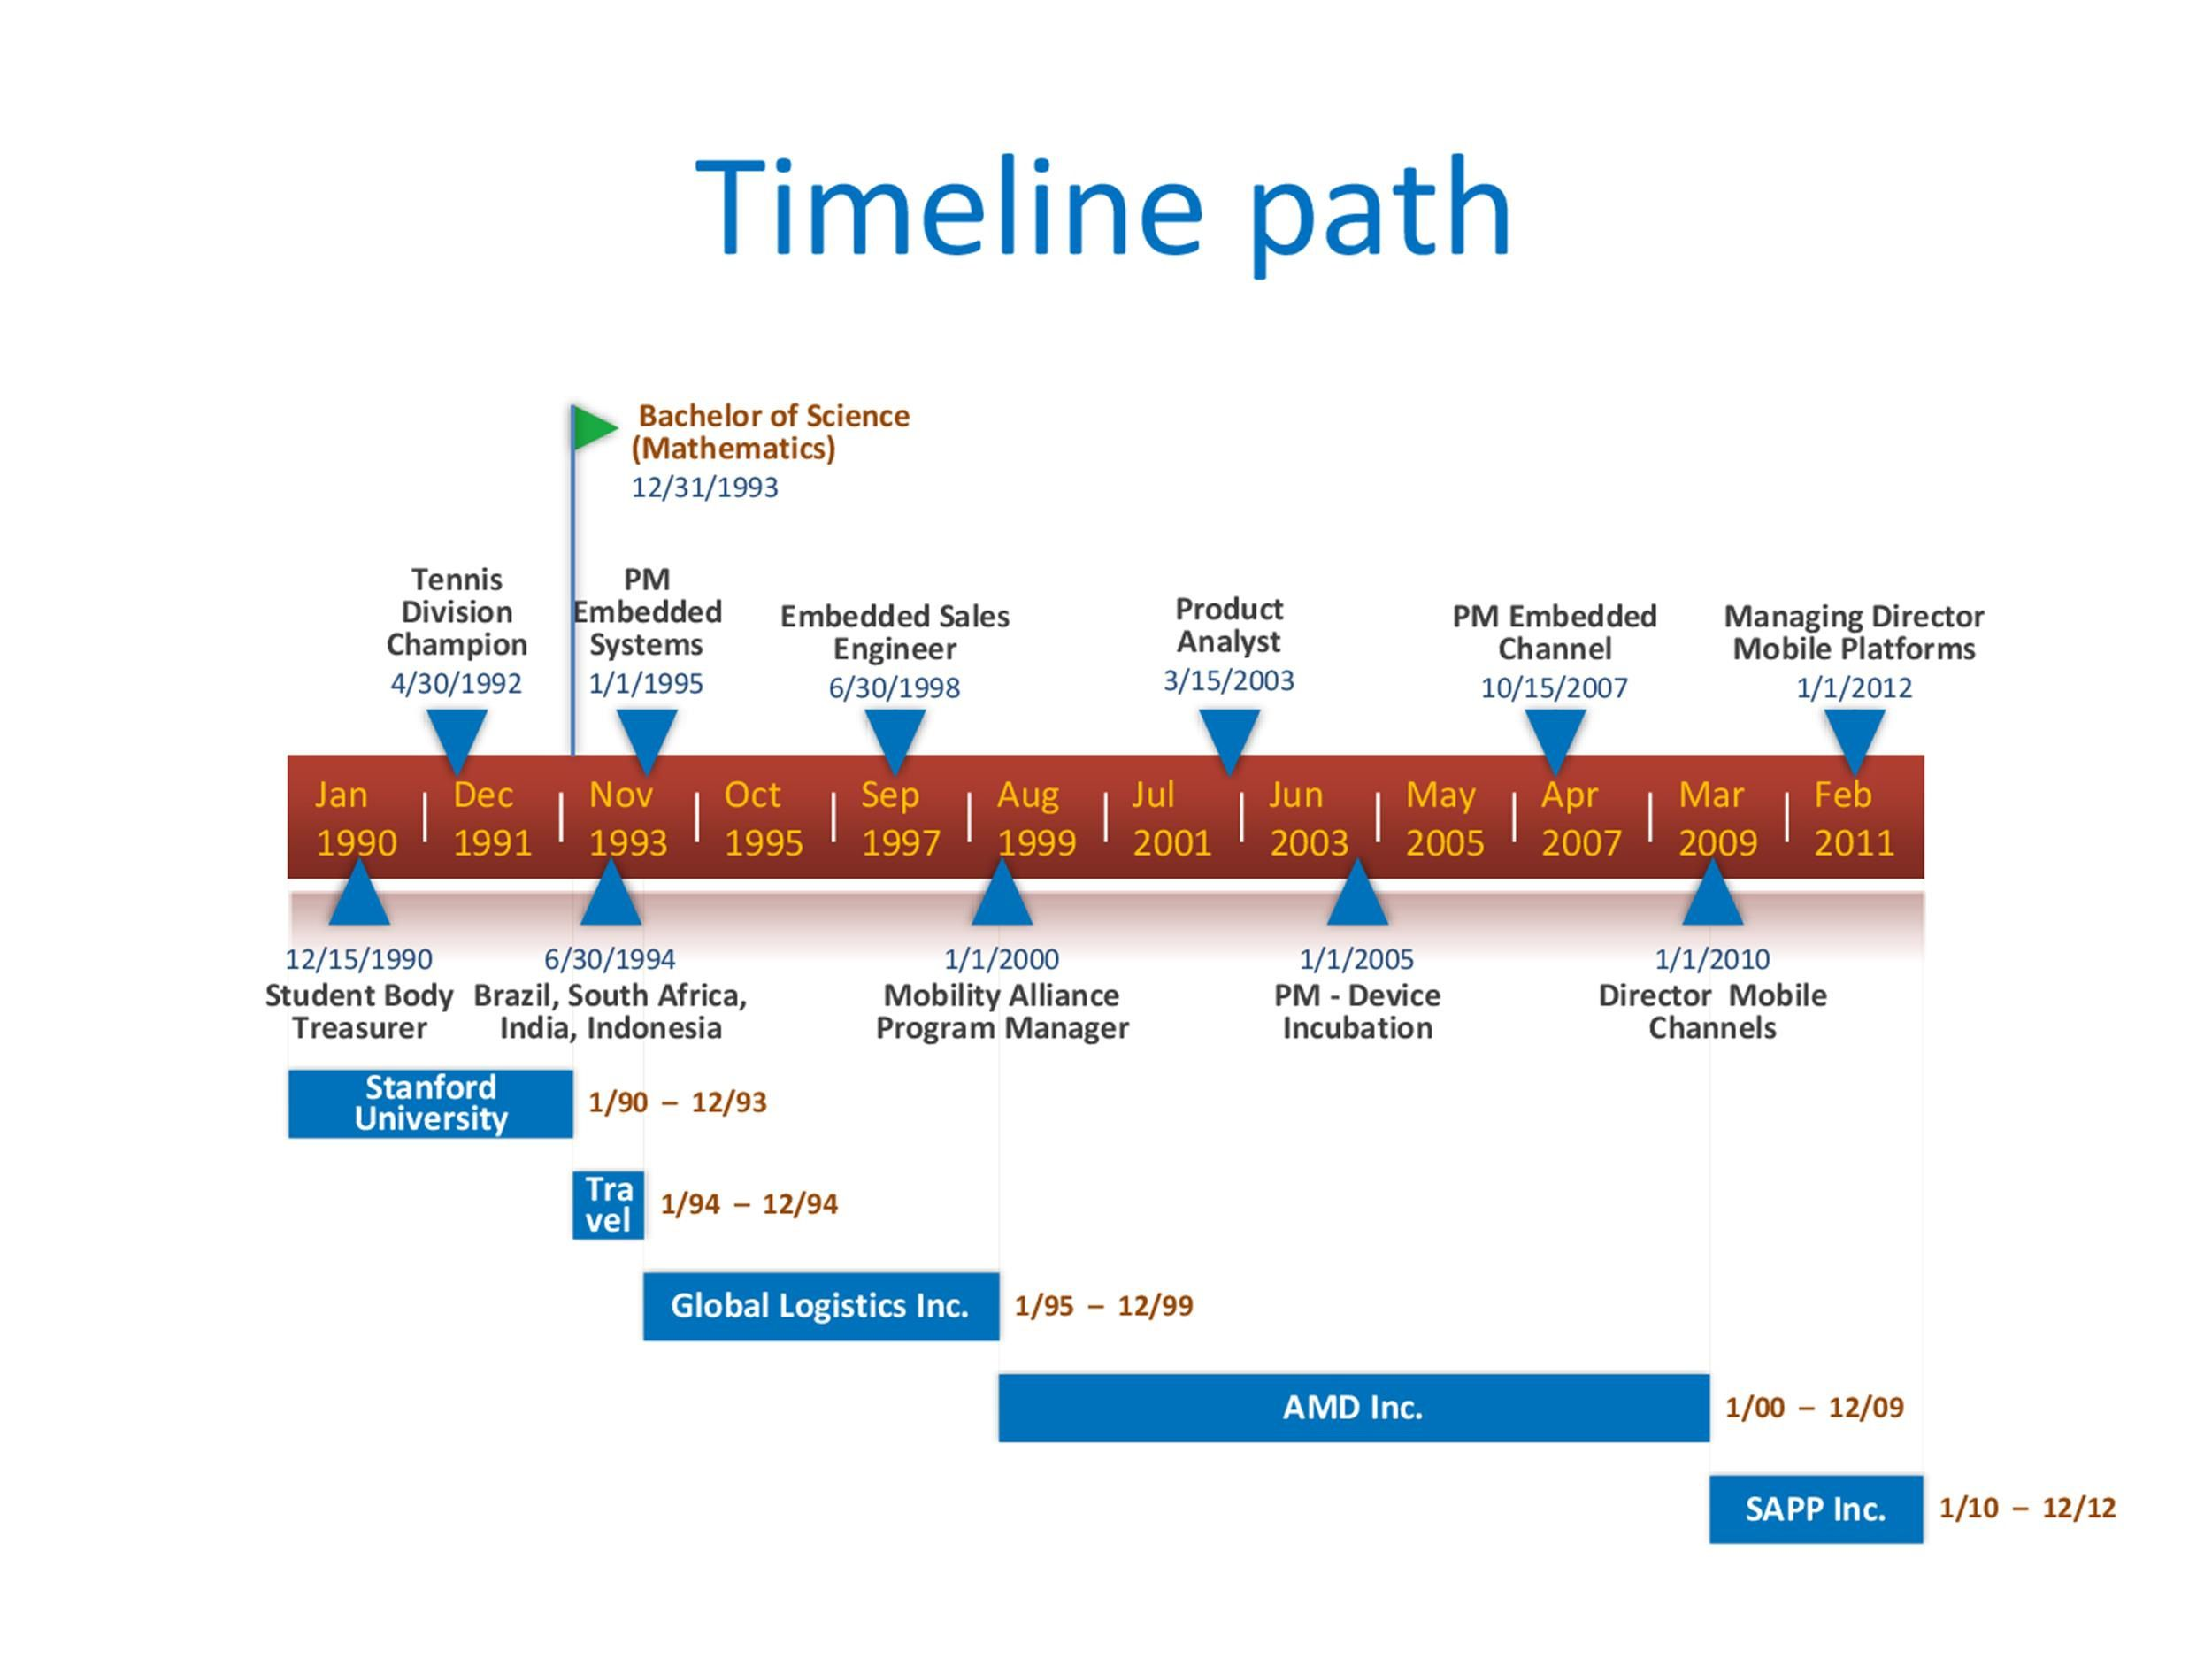 009 Archaicawful Project Timeline Template Word Concept  Management MicrosoftFull